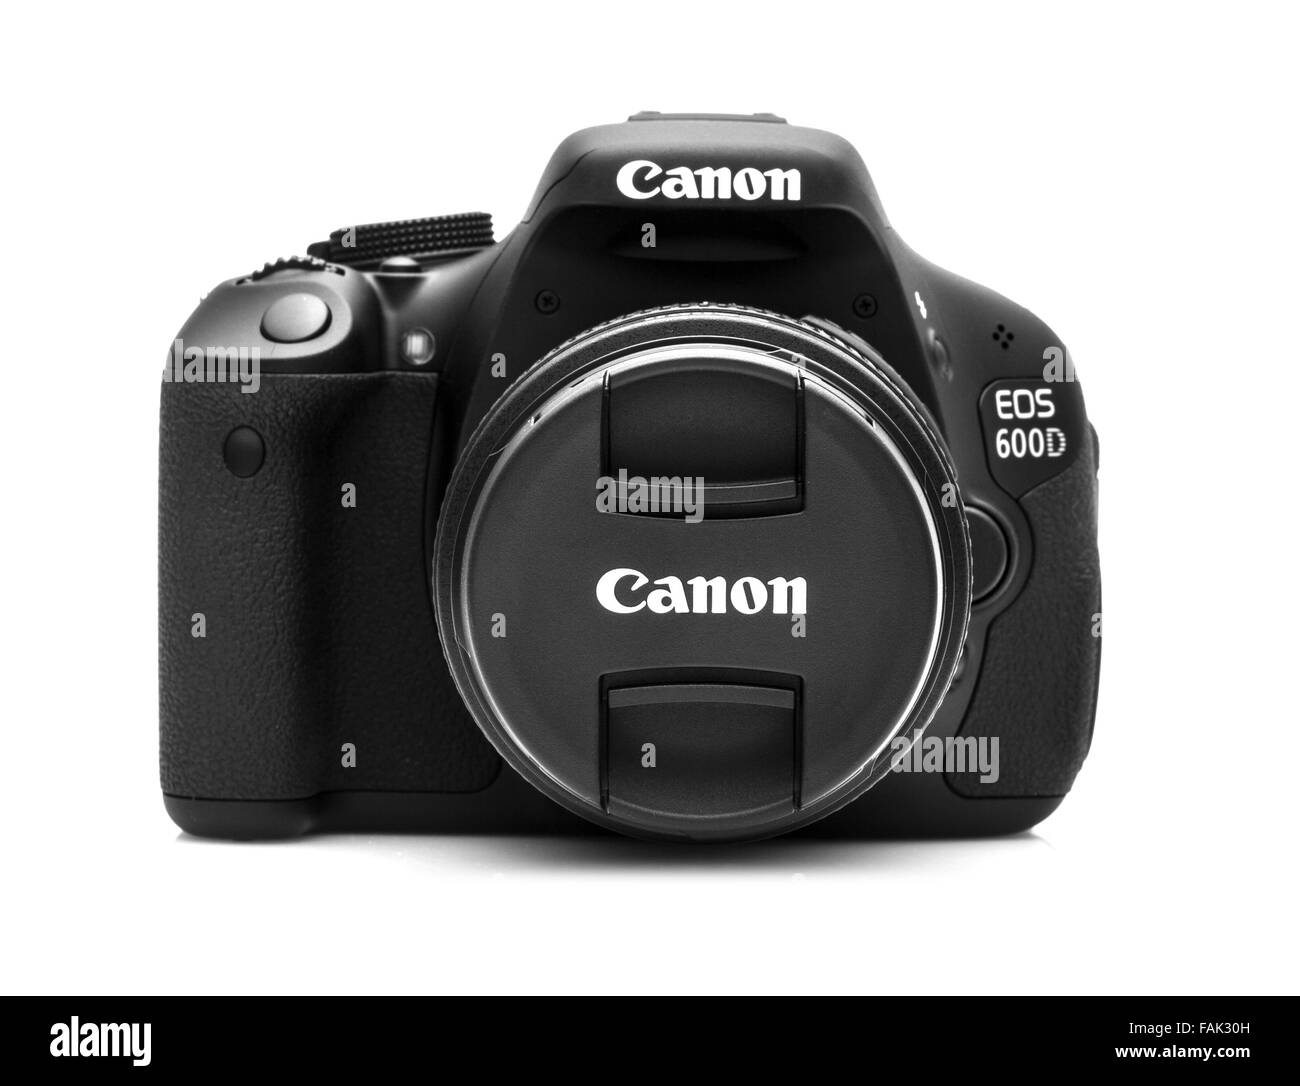 Canon 600D DSLR Camera on a White Background - Stock Image